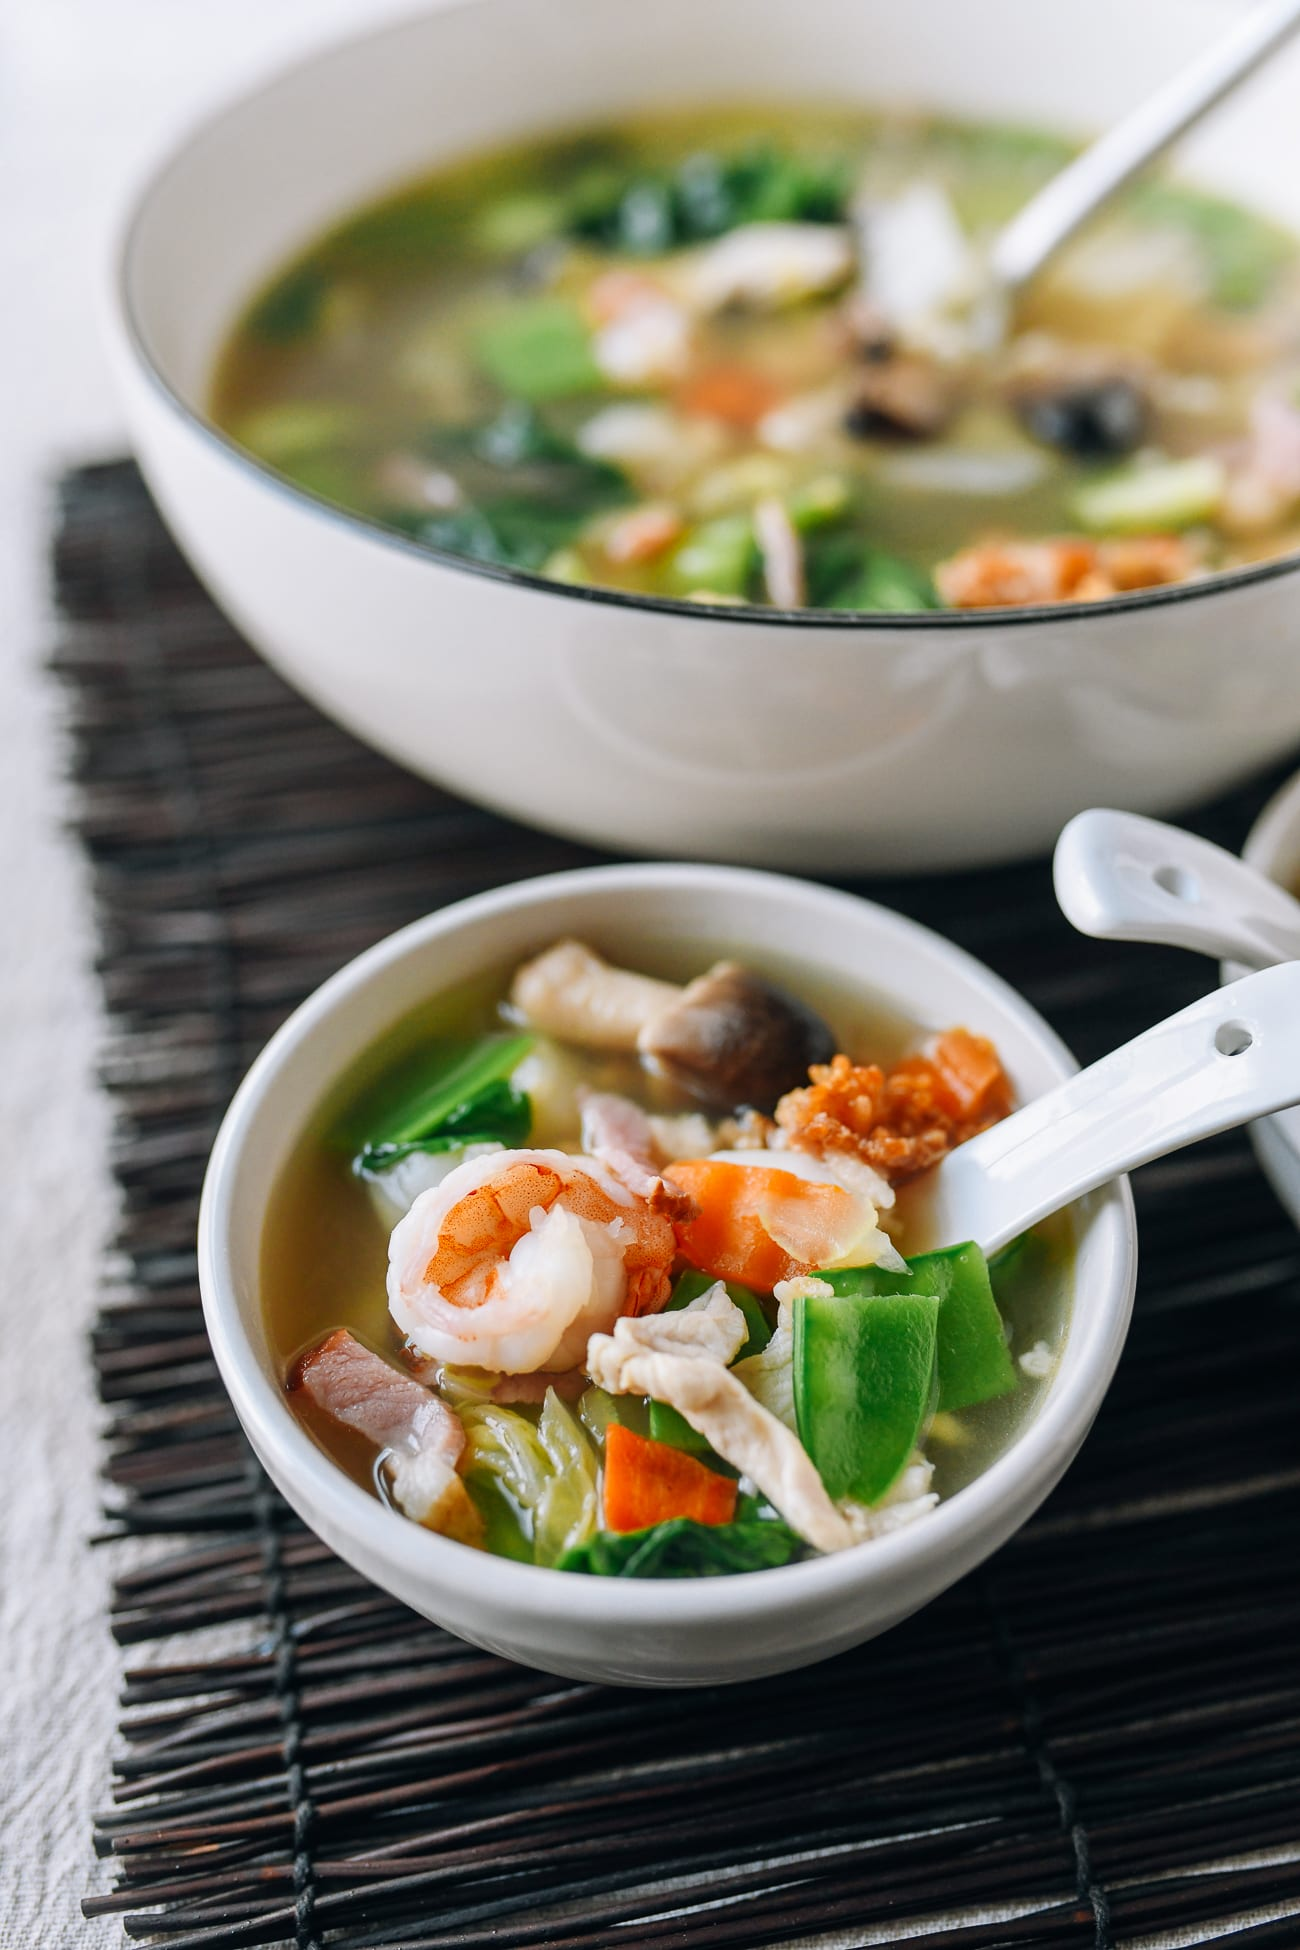 Bowl of sizzling rice soup